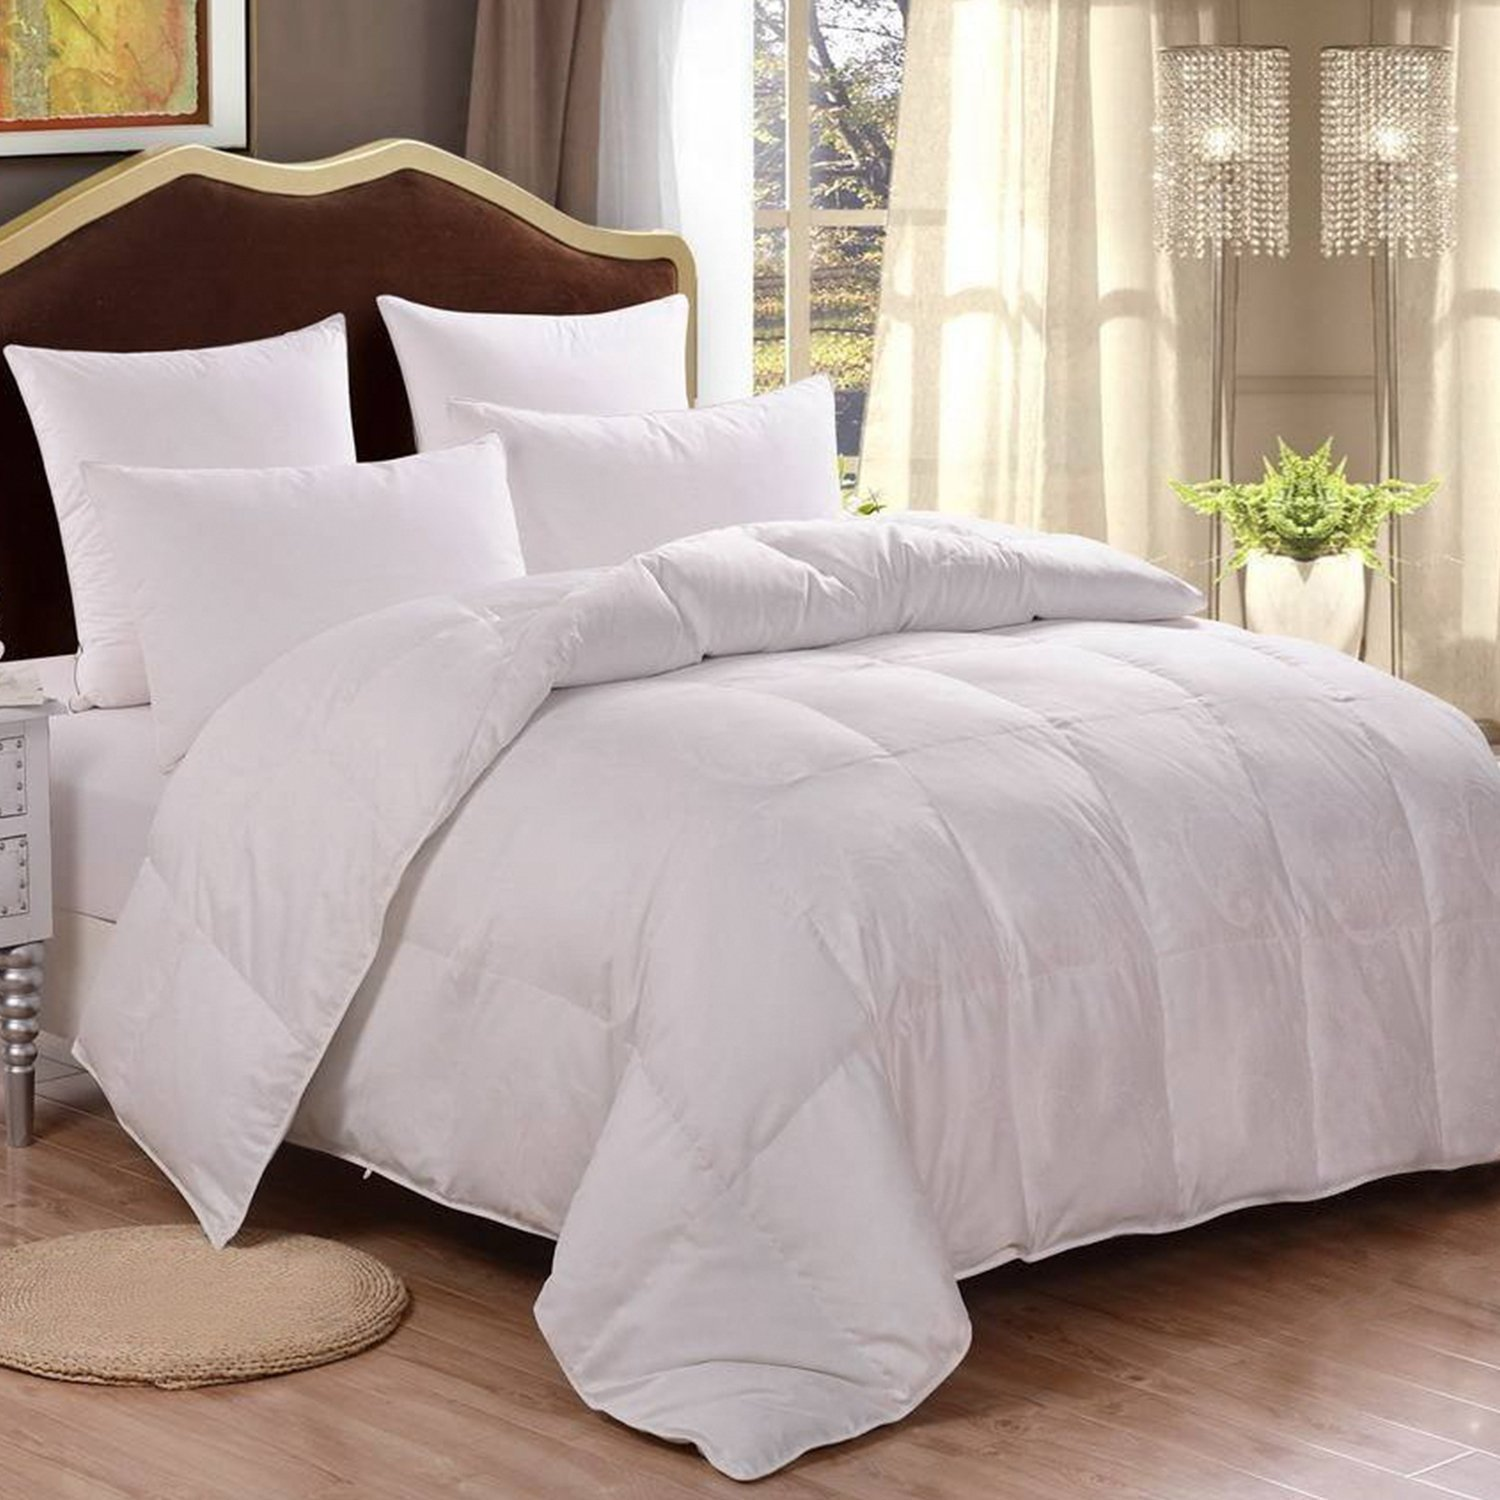 HOMFY Premium Cotton Comforter Queen,Quilted Comforter with Corner Tabs, Soft and Breathable (White, Queen)